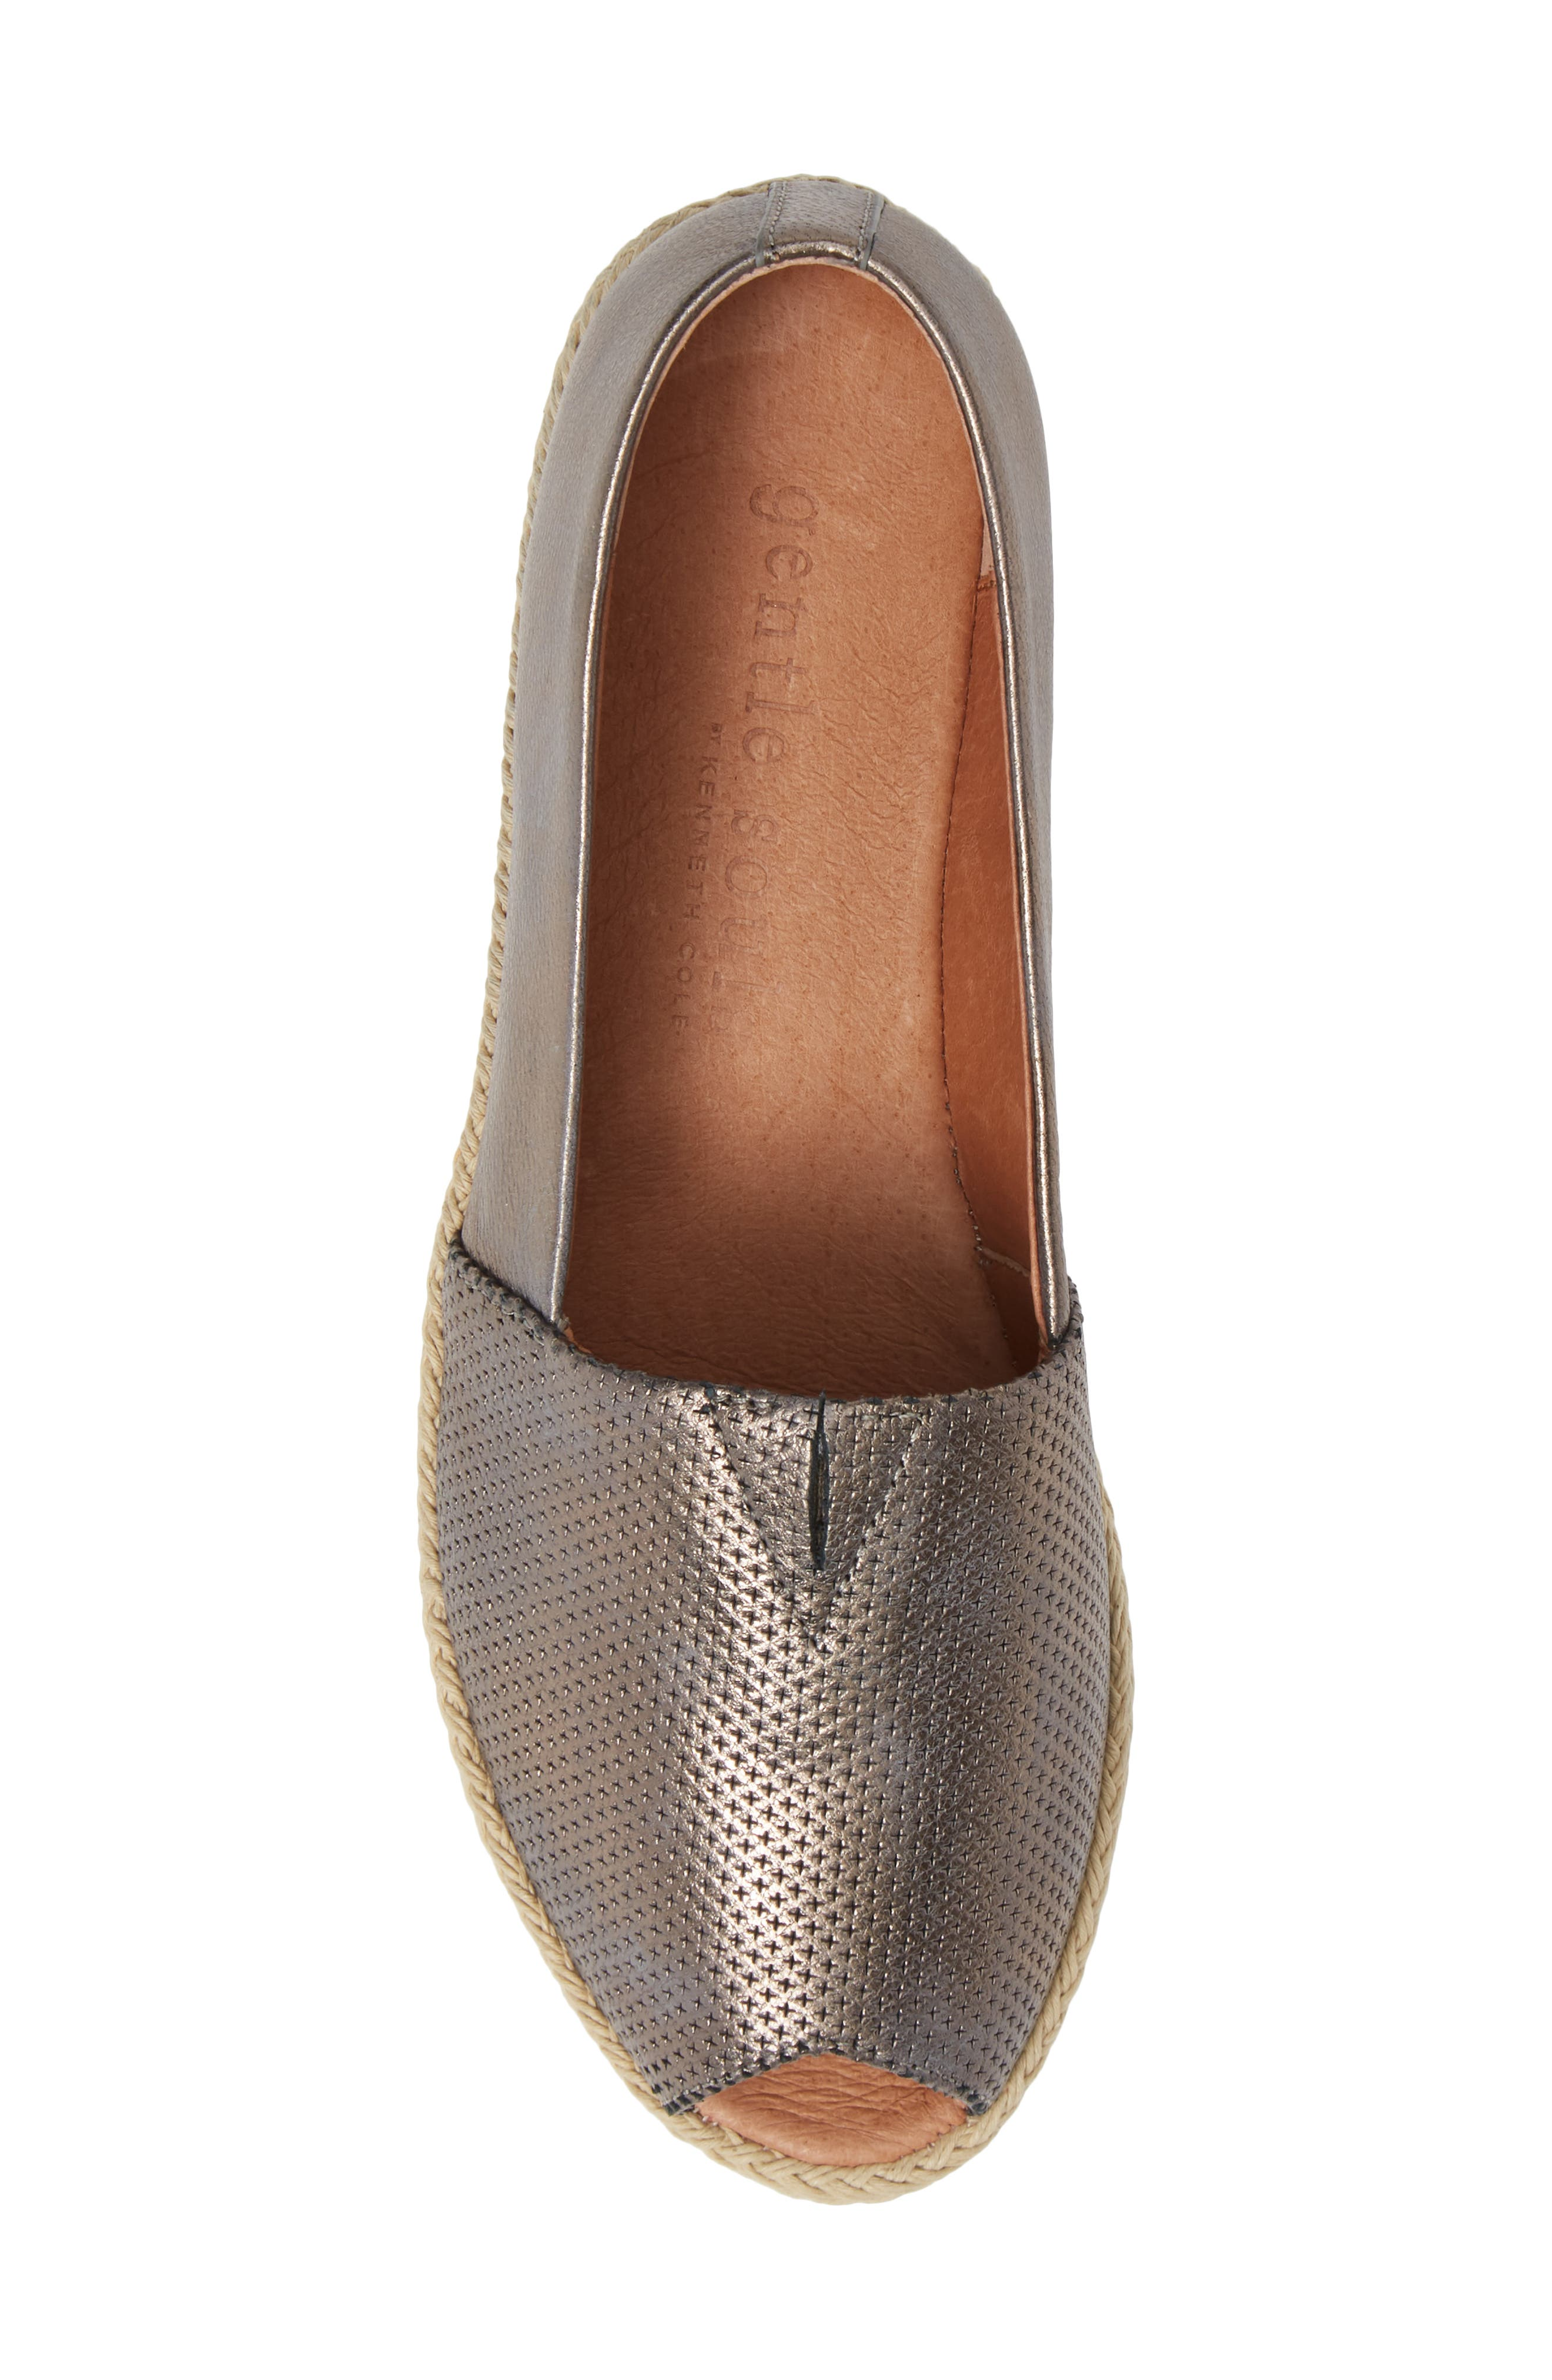 GENTLE SOULS BY KENNETH COLE, Luca Open Toe Wedge Espadrille, Alternate thumbnail 5, color, PEWTER METALLIC LEATHER